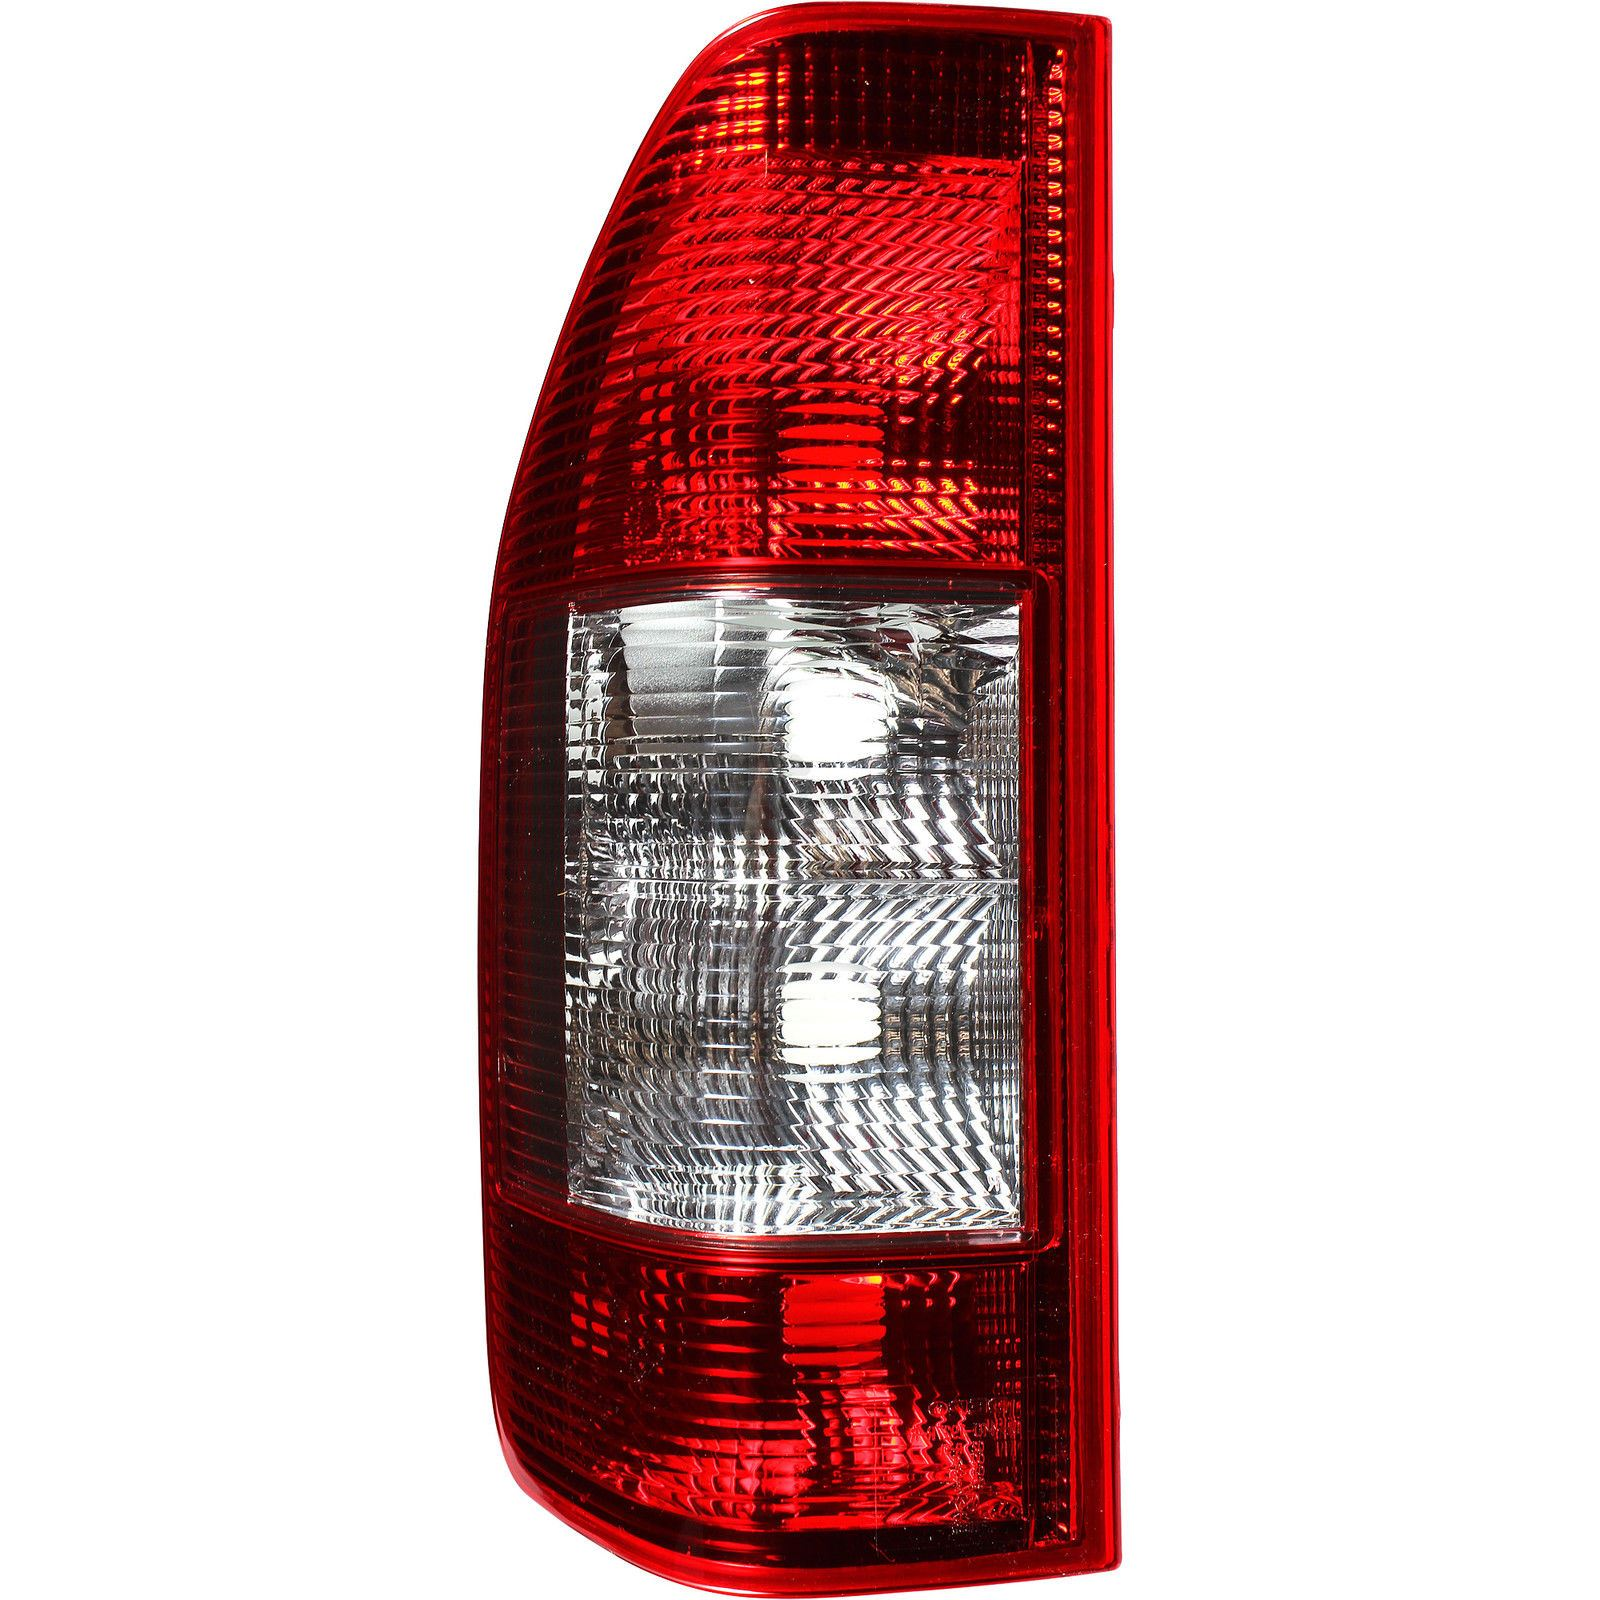 MERCEDES SPRINTER MK2 2003-2006 REAR TAIL LIGHT LAMPS LEFT /& RIGHT PAIR